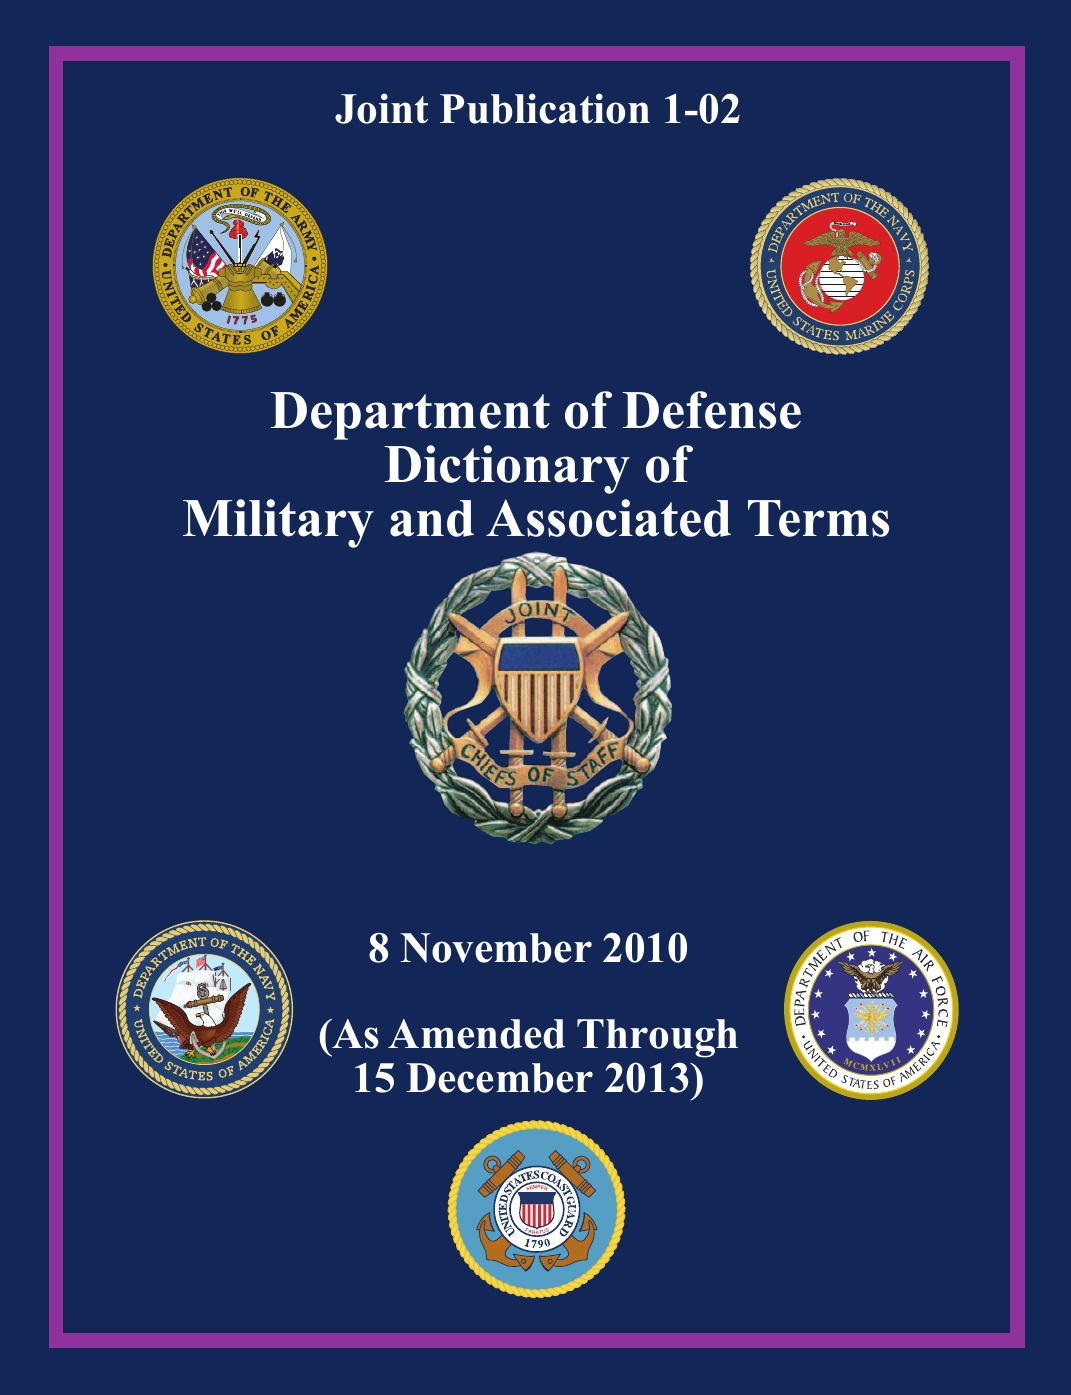 Joint Chiefs of Staff, Office Secretary of Defense, U. S. Department of Defense Department of Defense Dictionary of Military and Associated Terms (Joint Publication 1-02) a dictionary of military terms